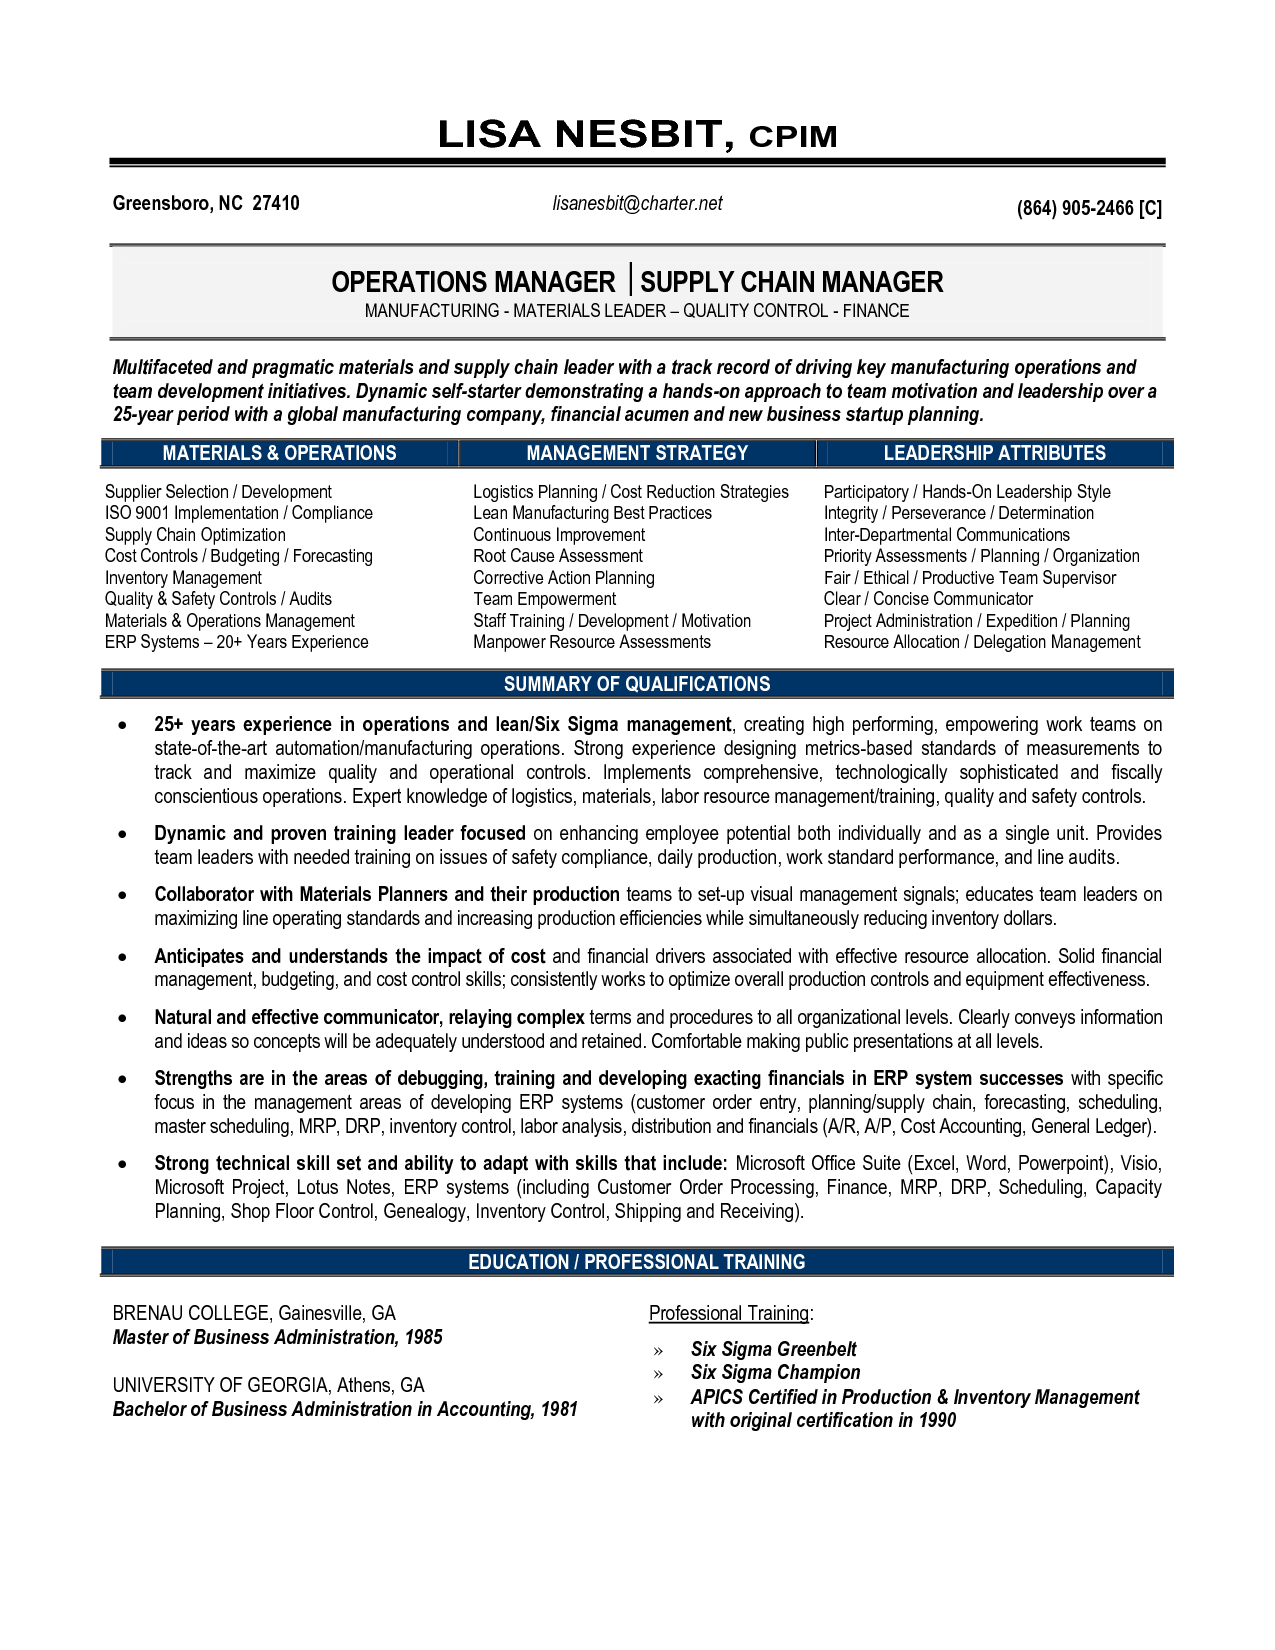 Senior Logistic Management Resume Senior Manager Supply Chain Operations In Greensboro Nc Resume L Operations Management Logistics Management Resume Examples